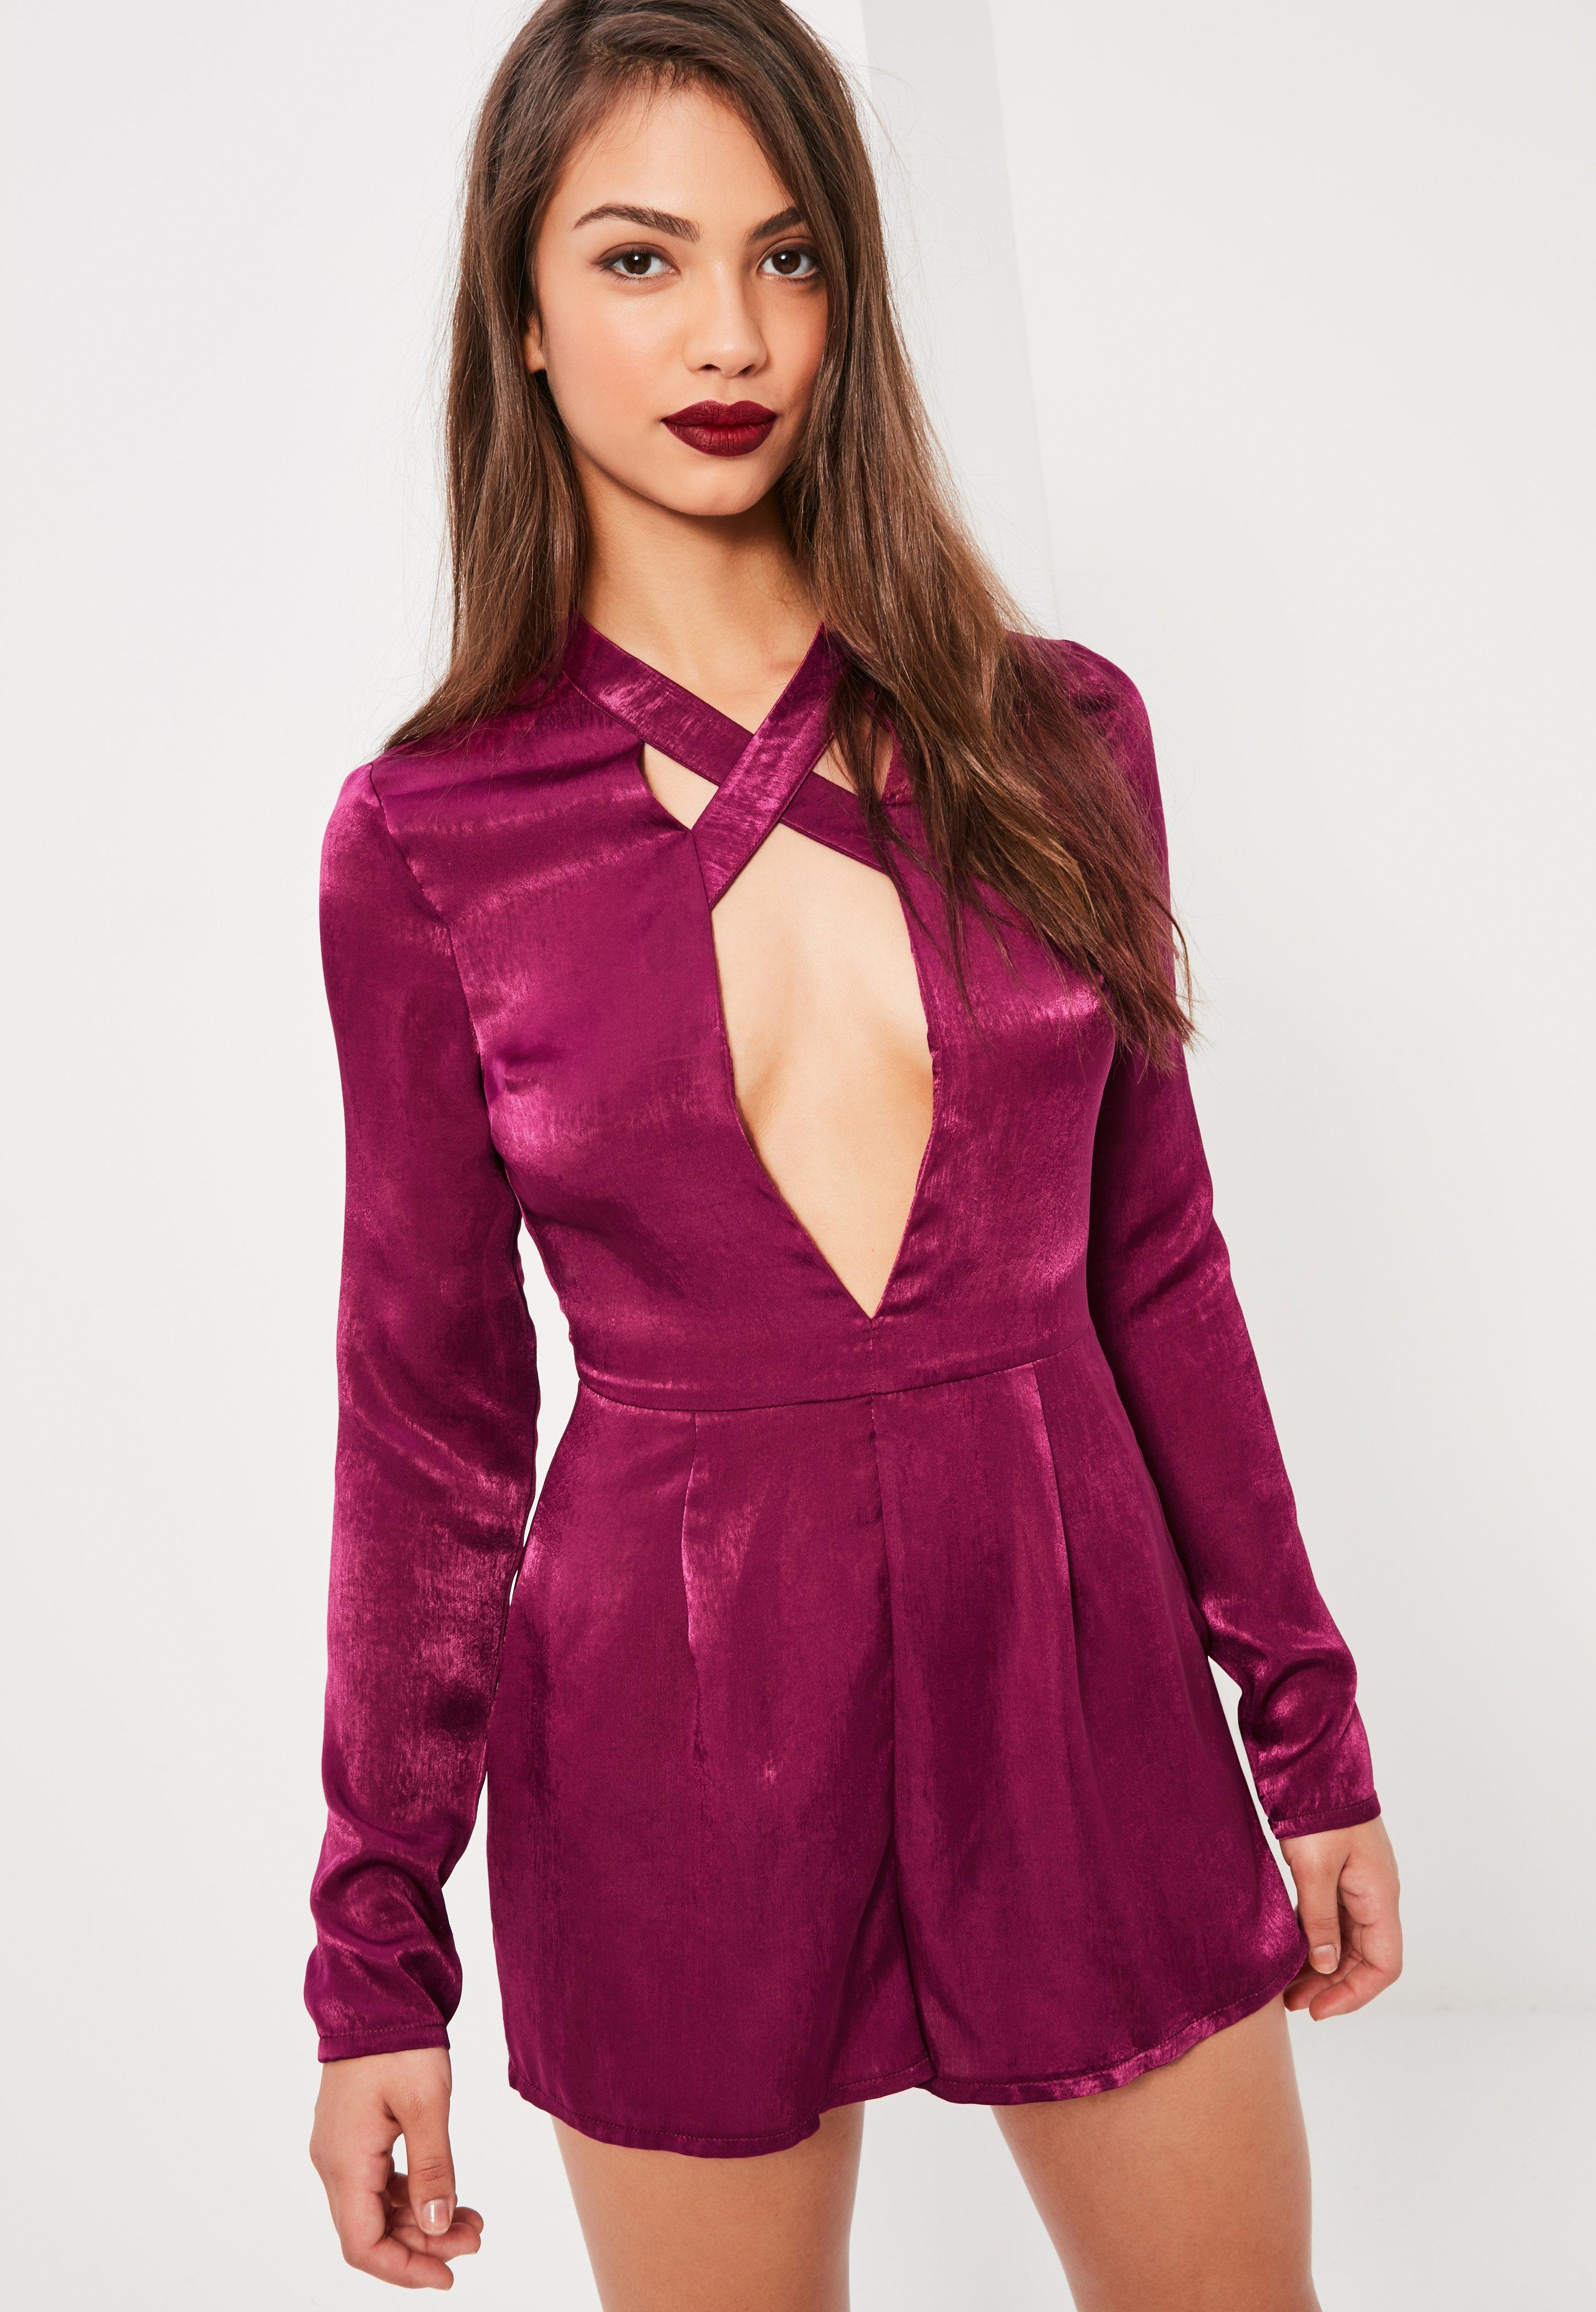 Tall Exclusive Pink Cross Strap Satin Playsuit